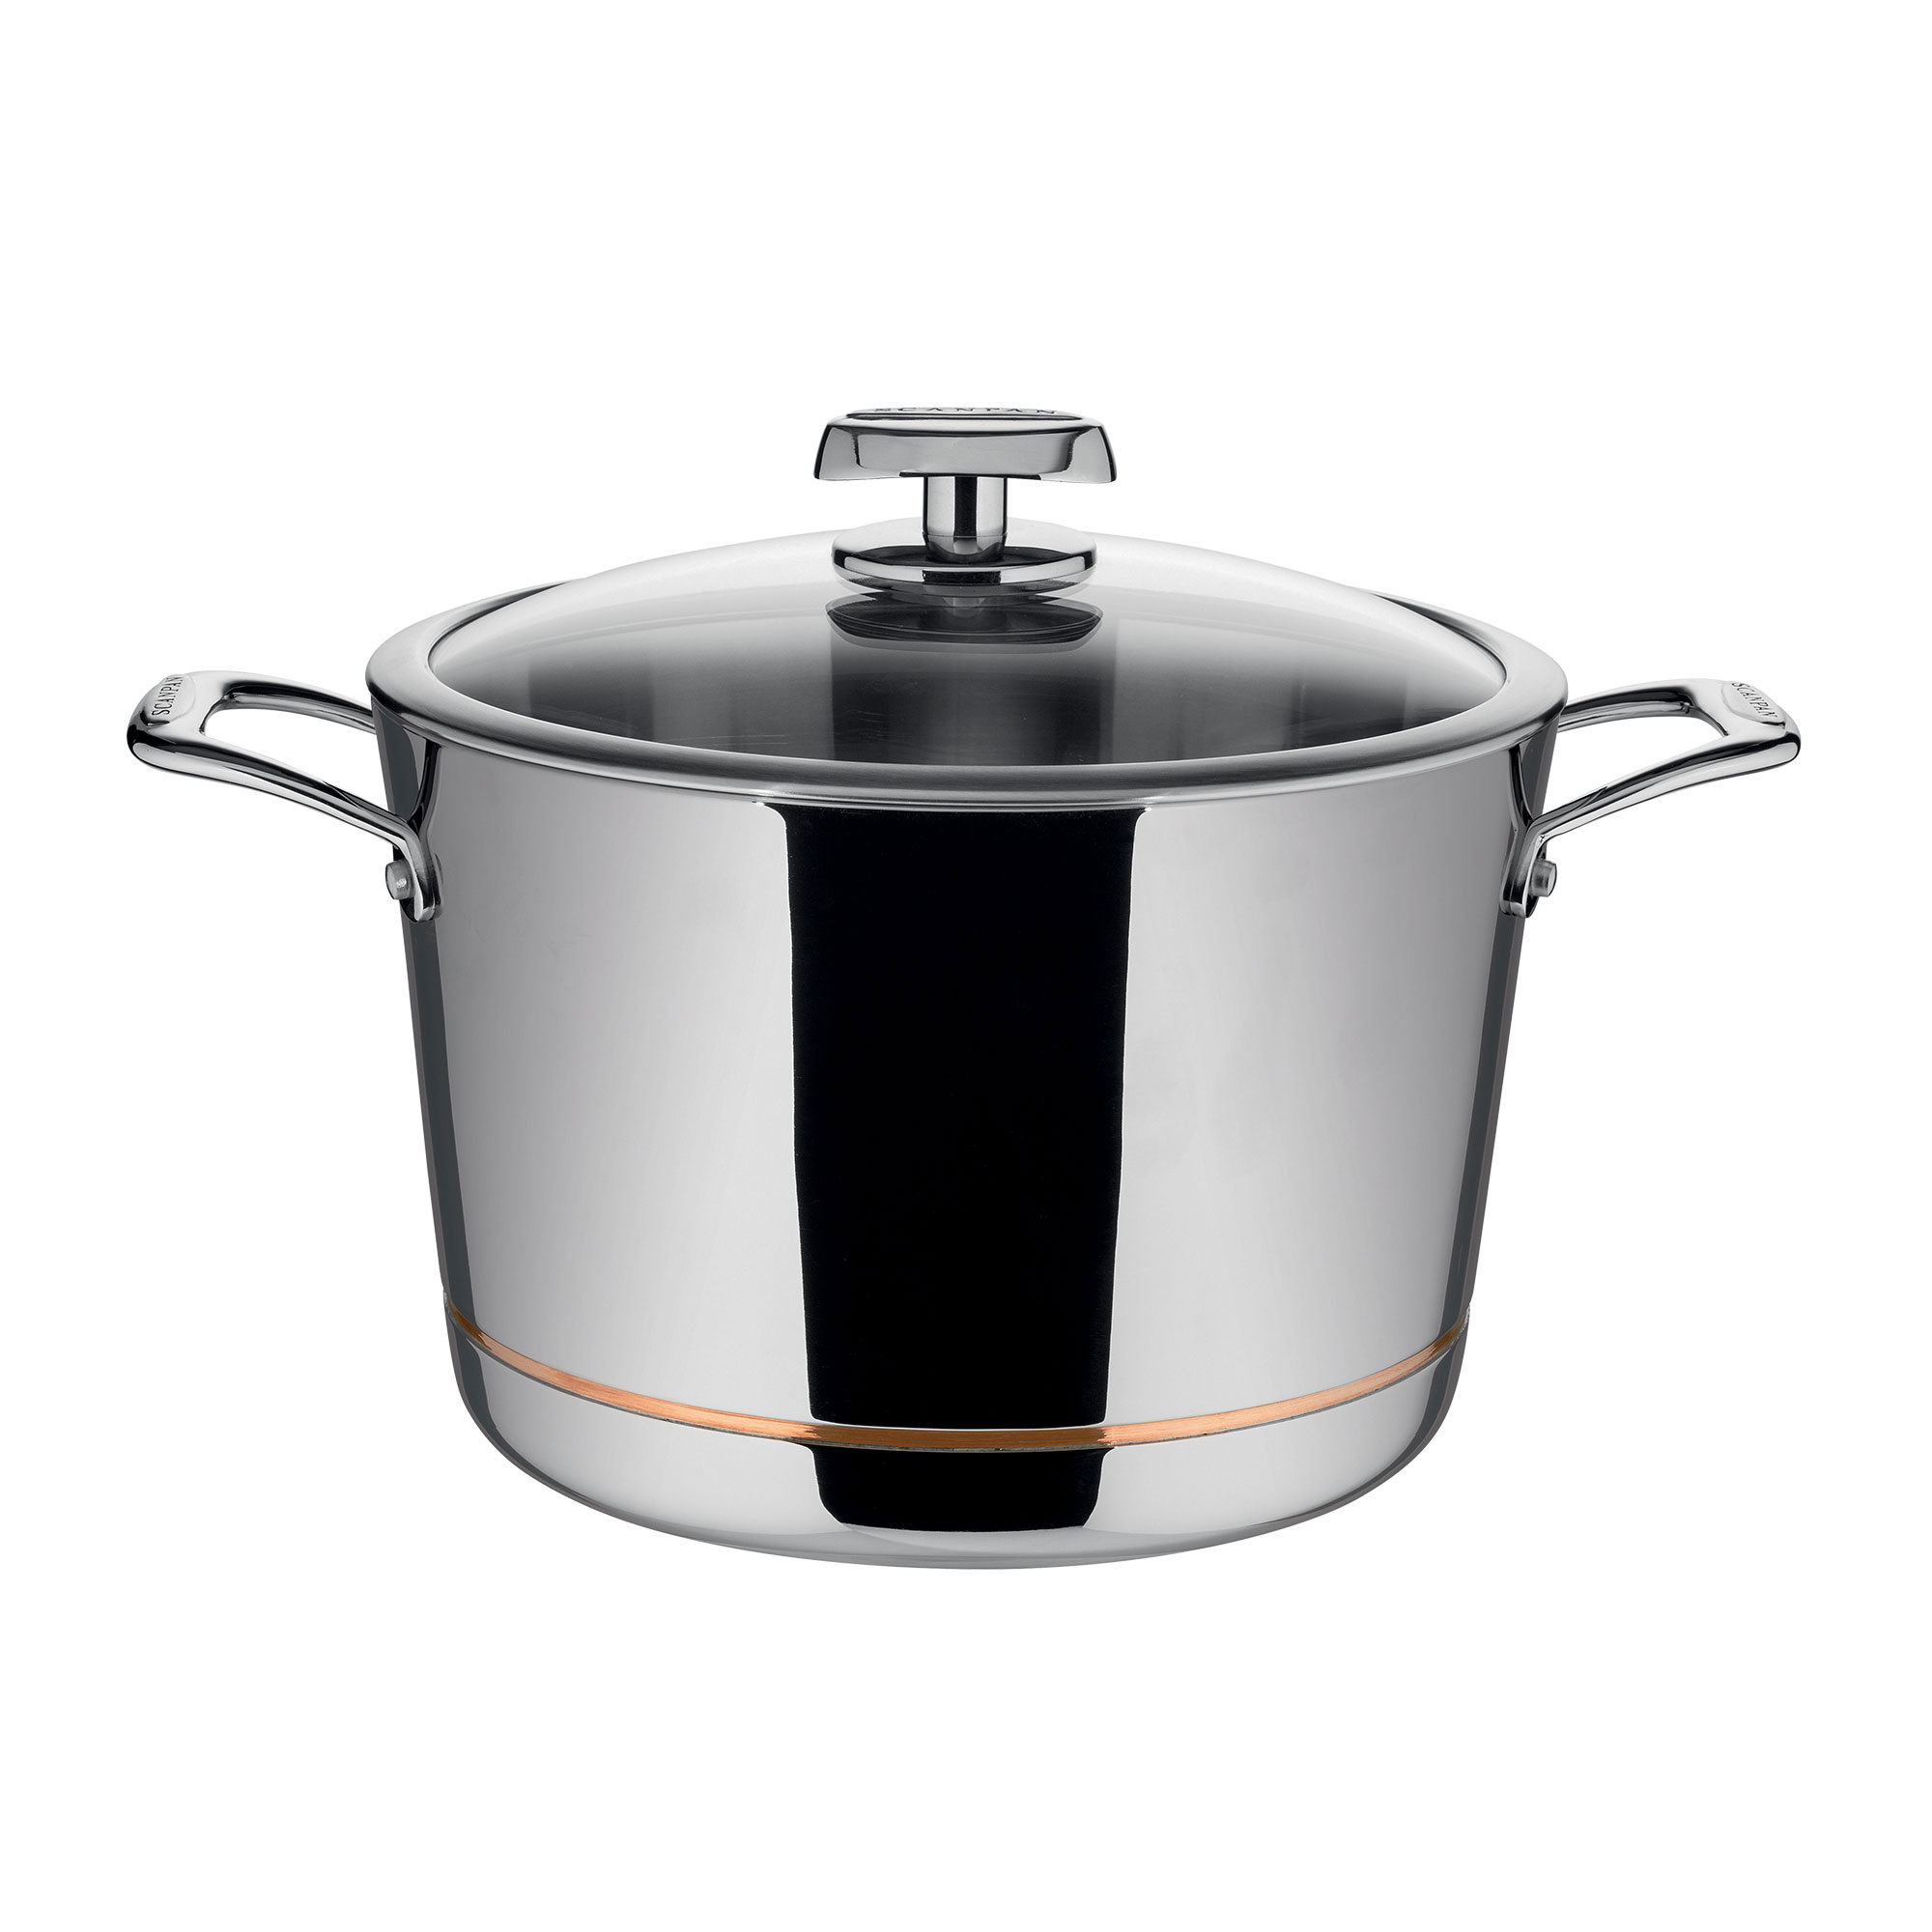 Scanpan Axis Stockpot 26cm - 7L